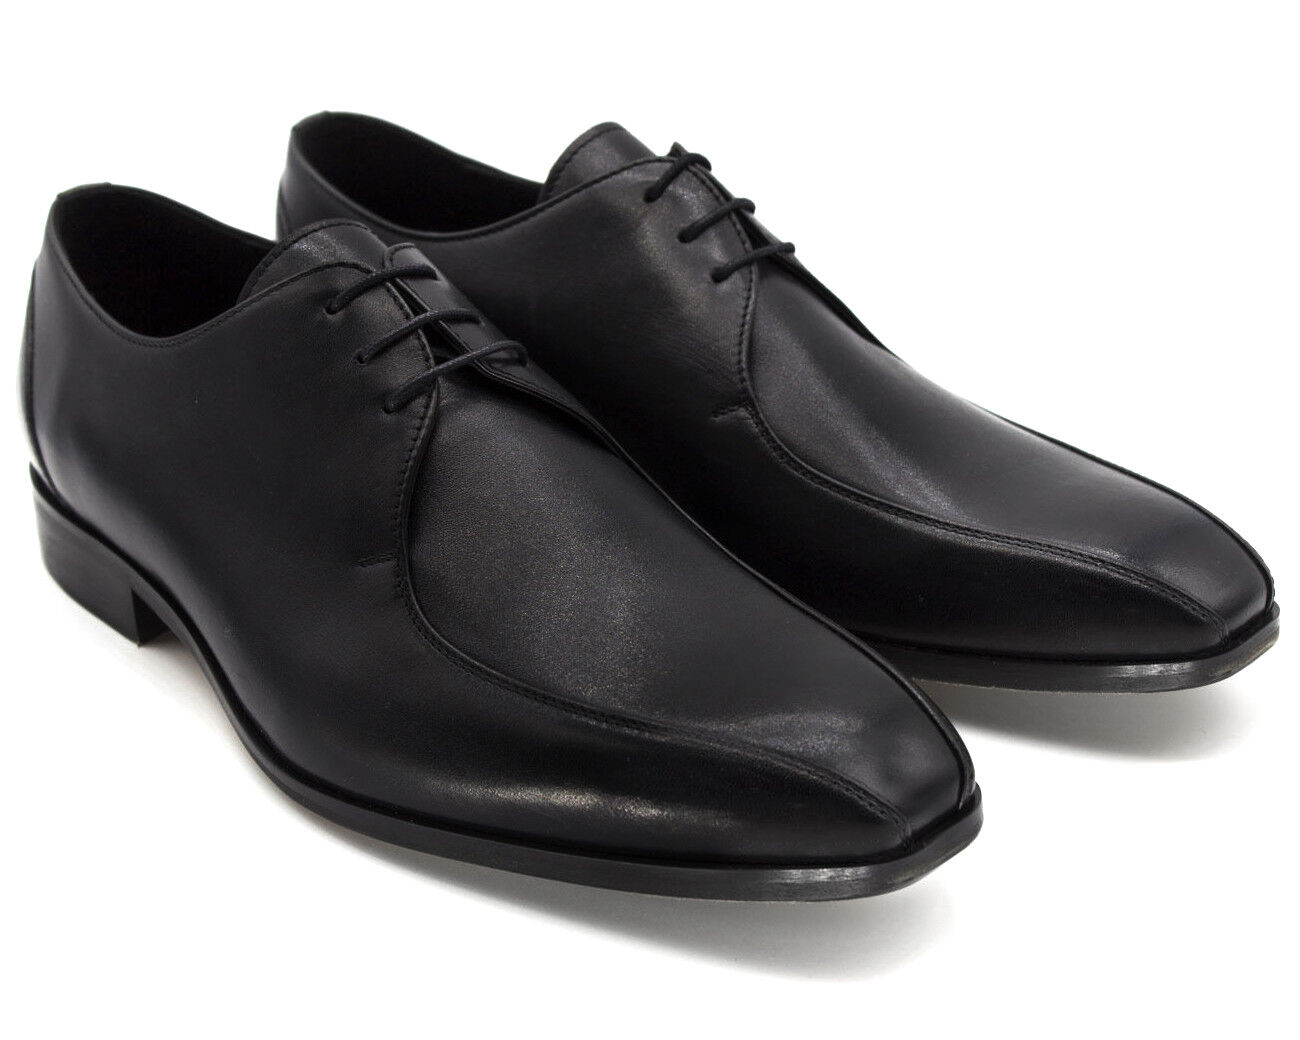 6 UK UK UK 8 NEW MENS schwarz REAL LEATHER SMART schuhe FORMAL WEDDING OCCASION EU 42 2f2c12